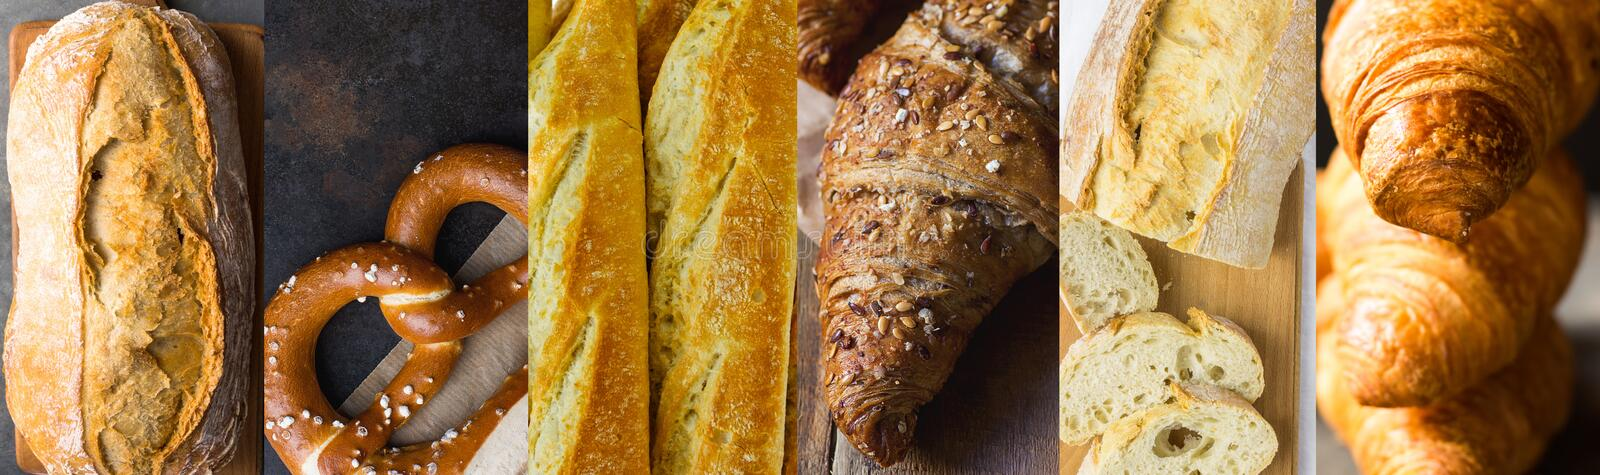 Long high resolution banner for bakeries pastry shops. Variety assortment of different kinds of bread baked goods baguettes. Croissants pretzels ciabatta batard stock photo